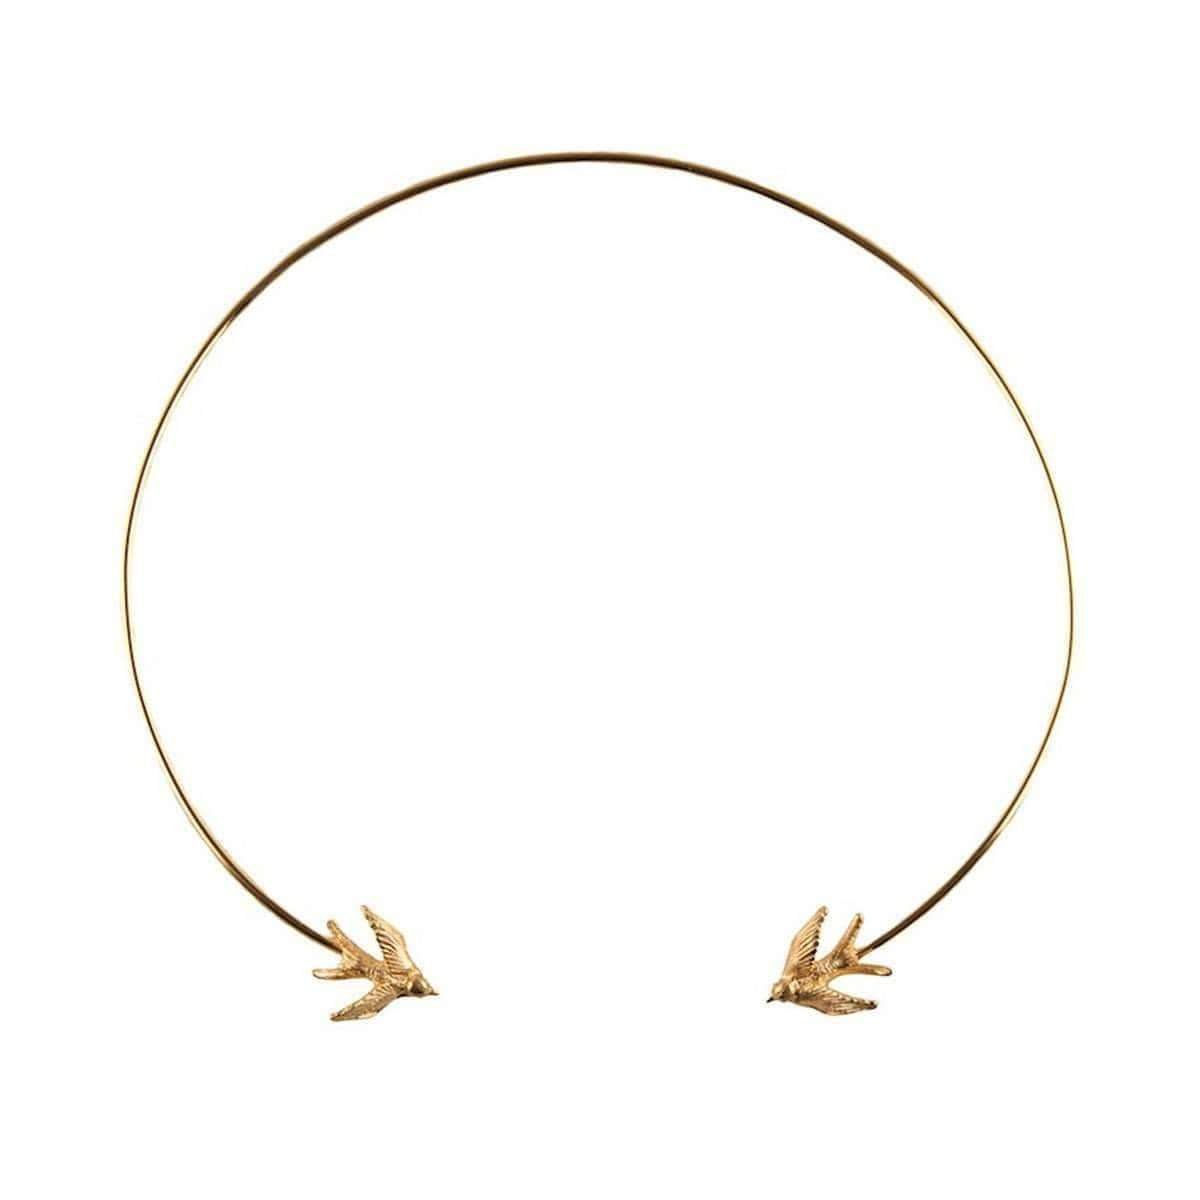 Gold Swallow Torc Necklace, Roz Buehrien